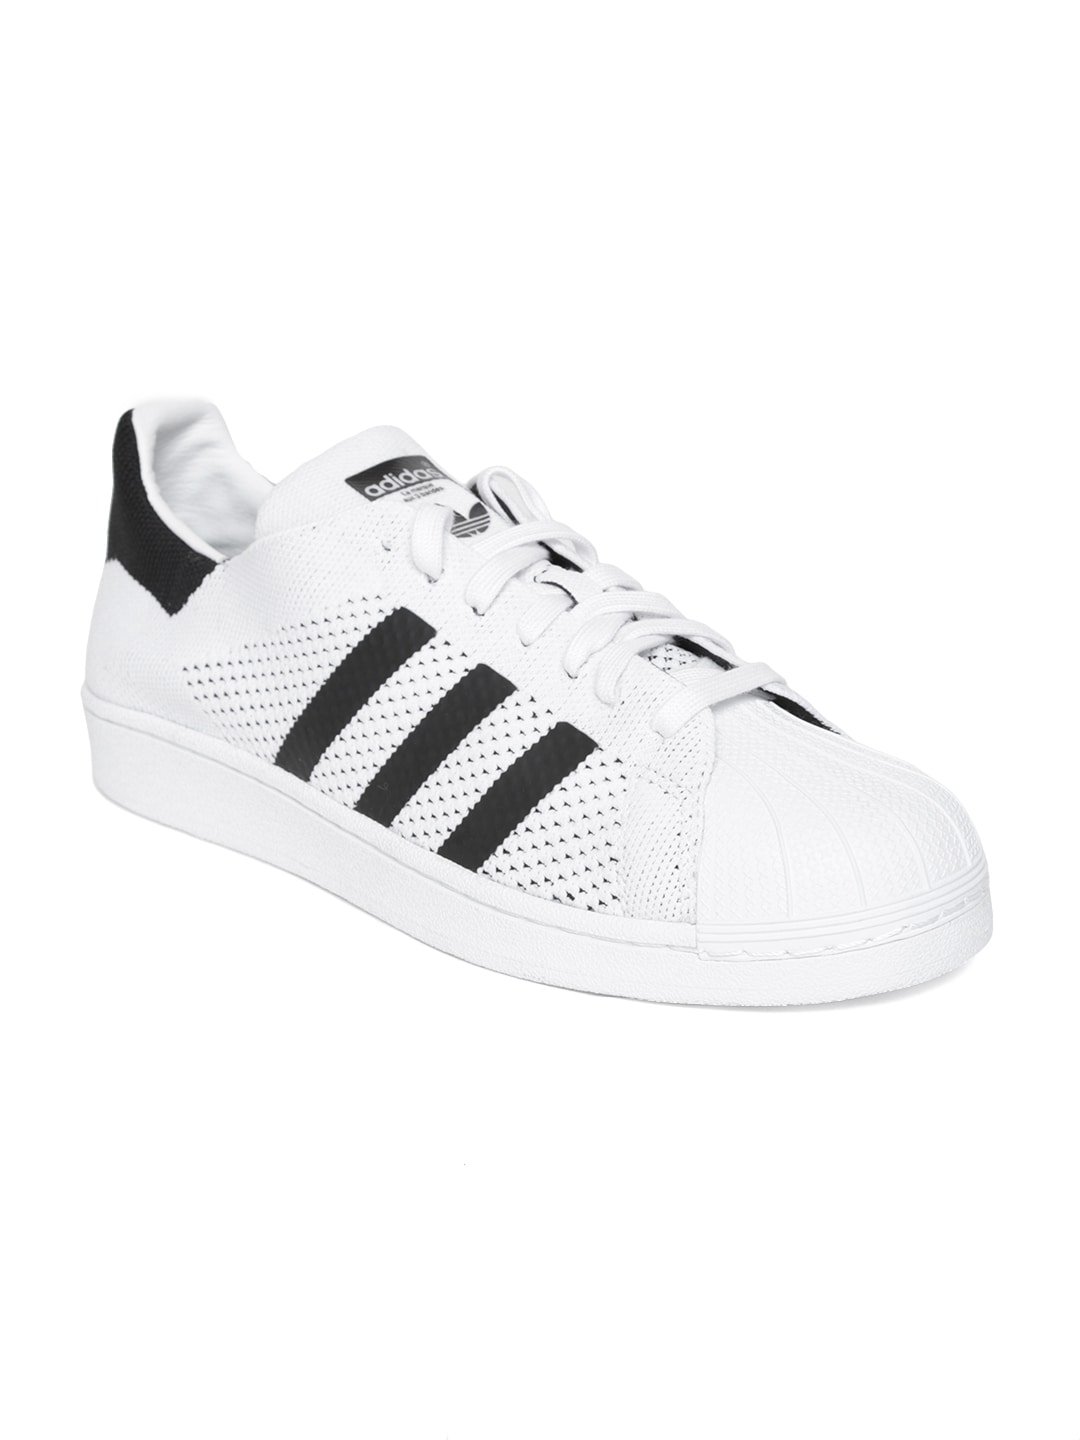 4efb5a8e2a96 Adidas Shoes - Buy Adidas Shoes for Men   Women Online - Myntra